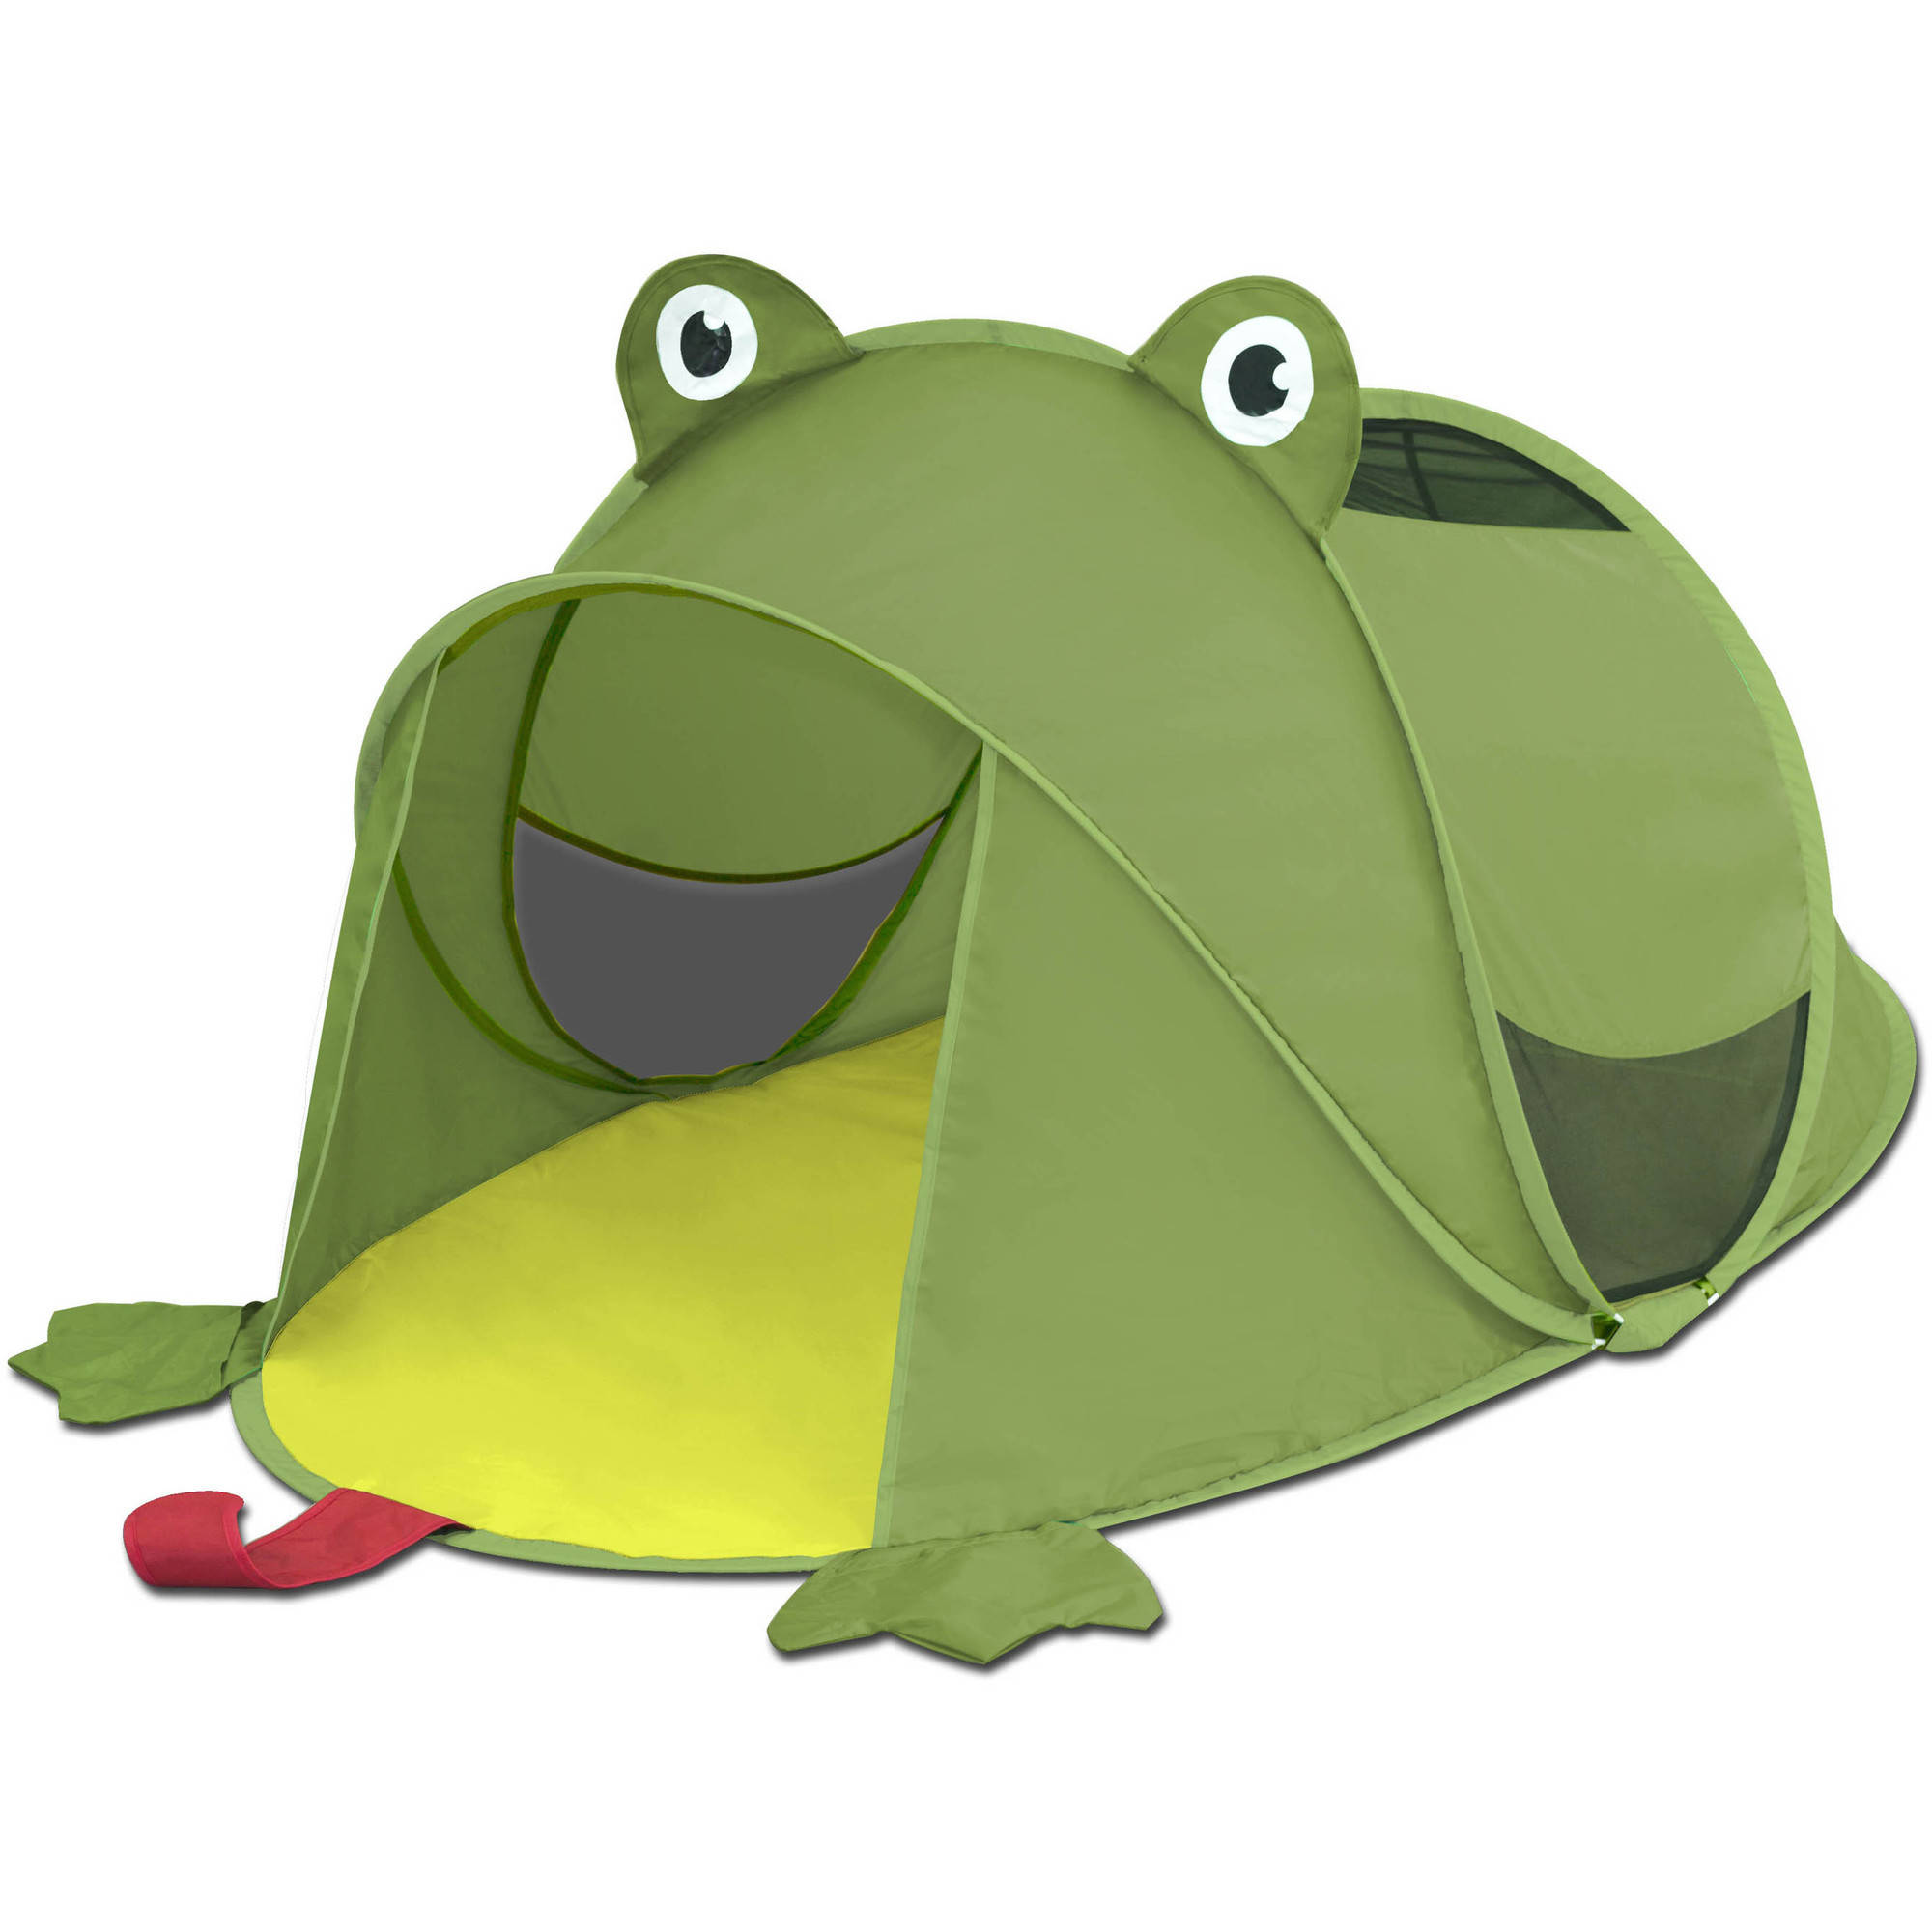 Kids Pop-Up Tent Frog  sc 1 st  Walmart : walmart pop up tent - memphite.com